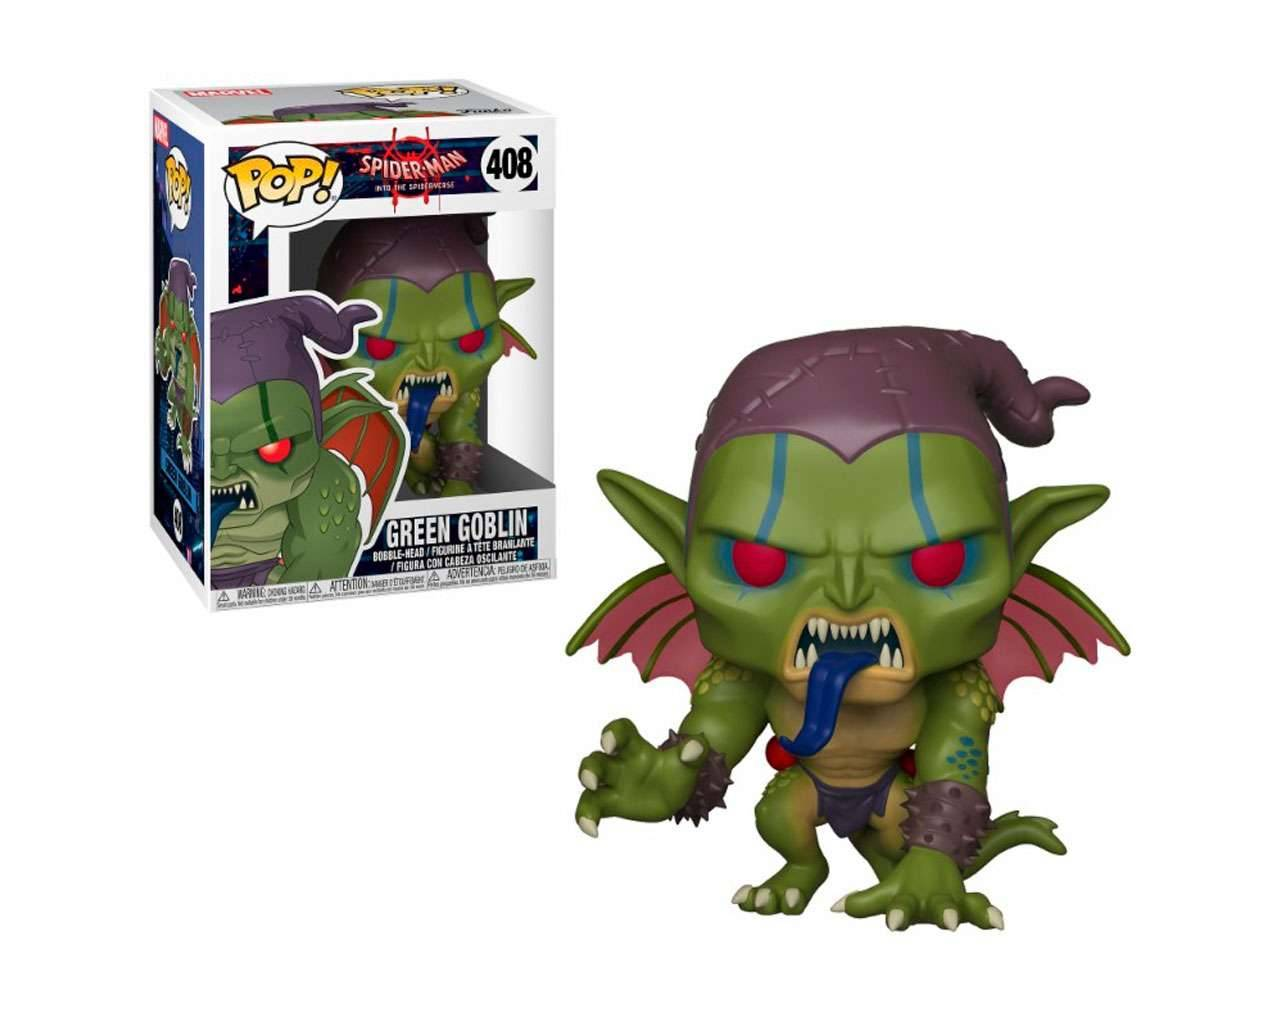 Green Goblin (Into the Spider-Verse) Pop! Vinyl